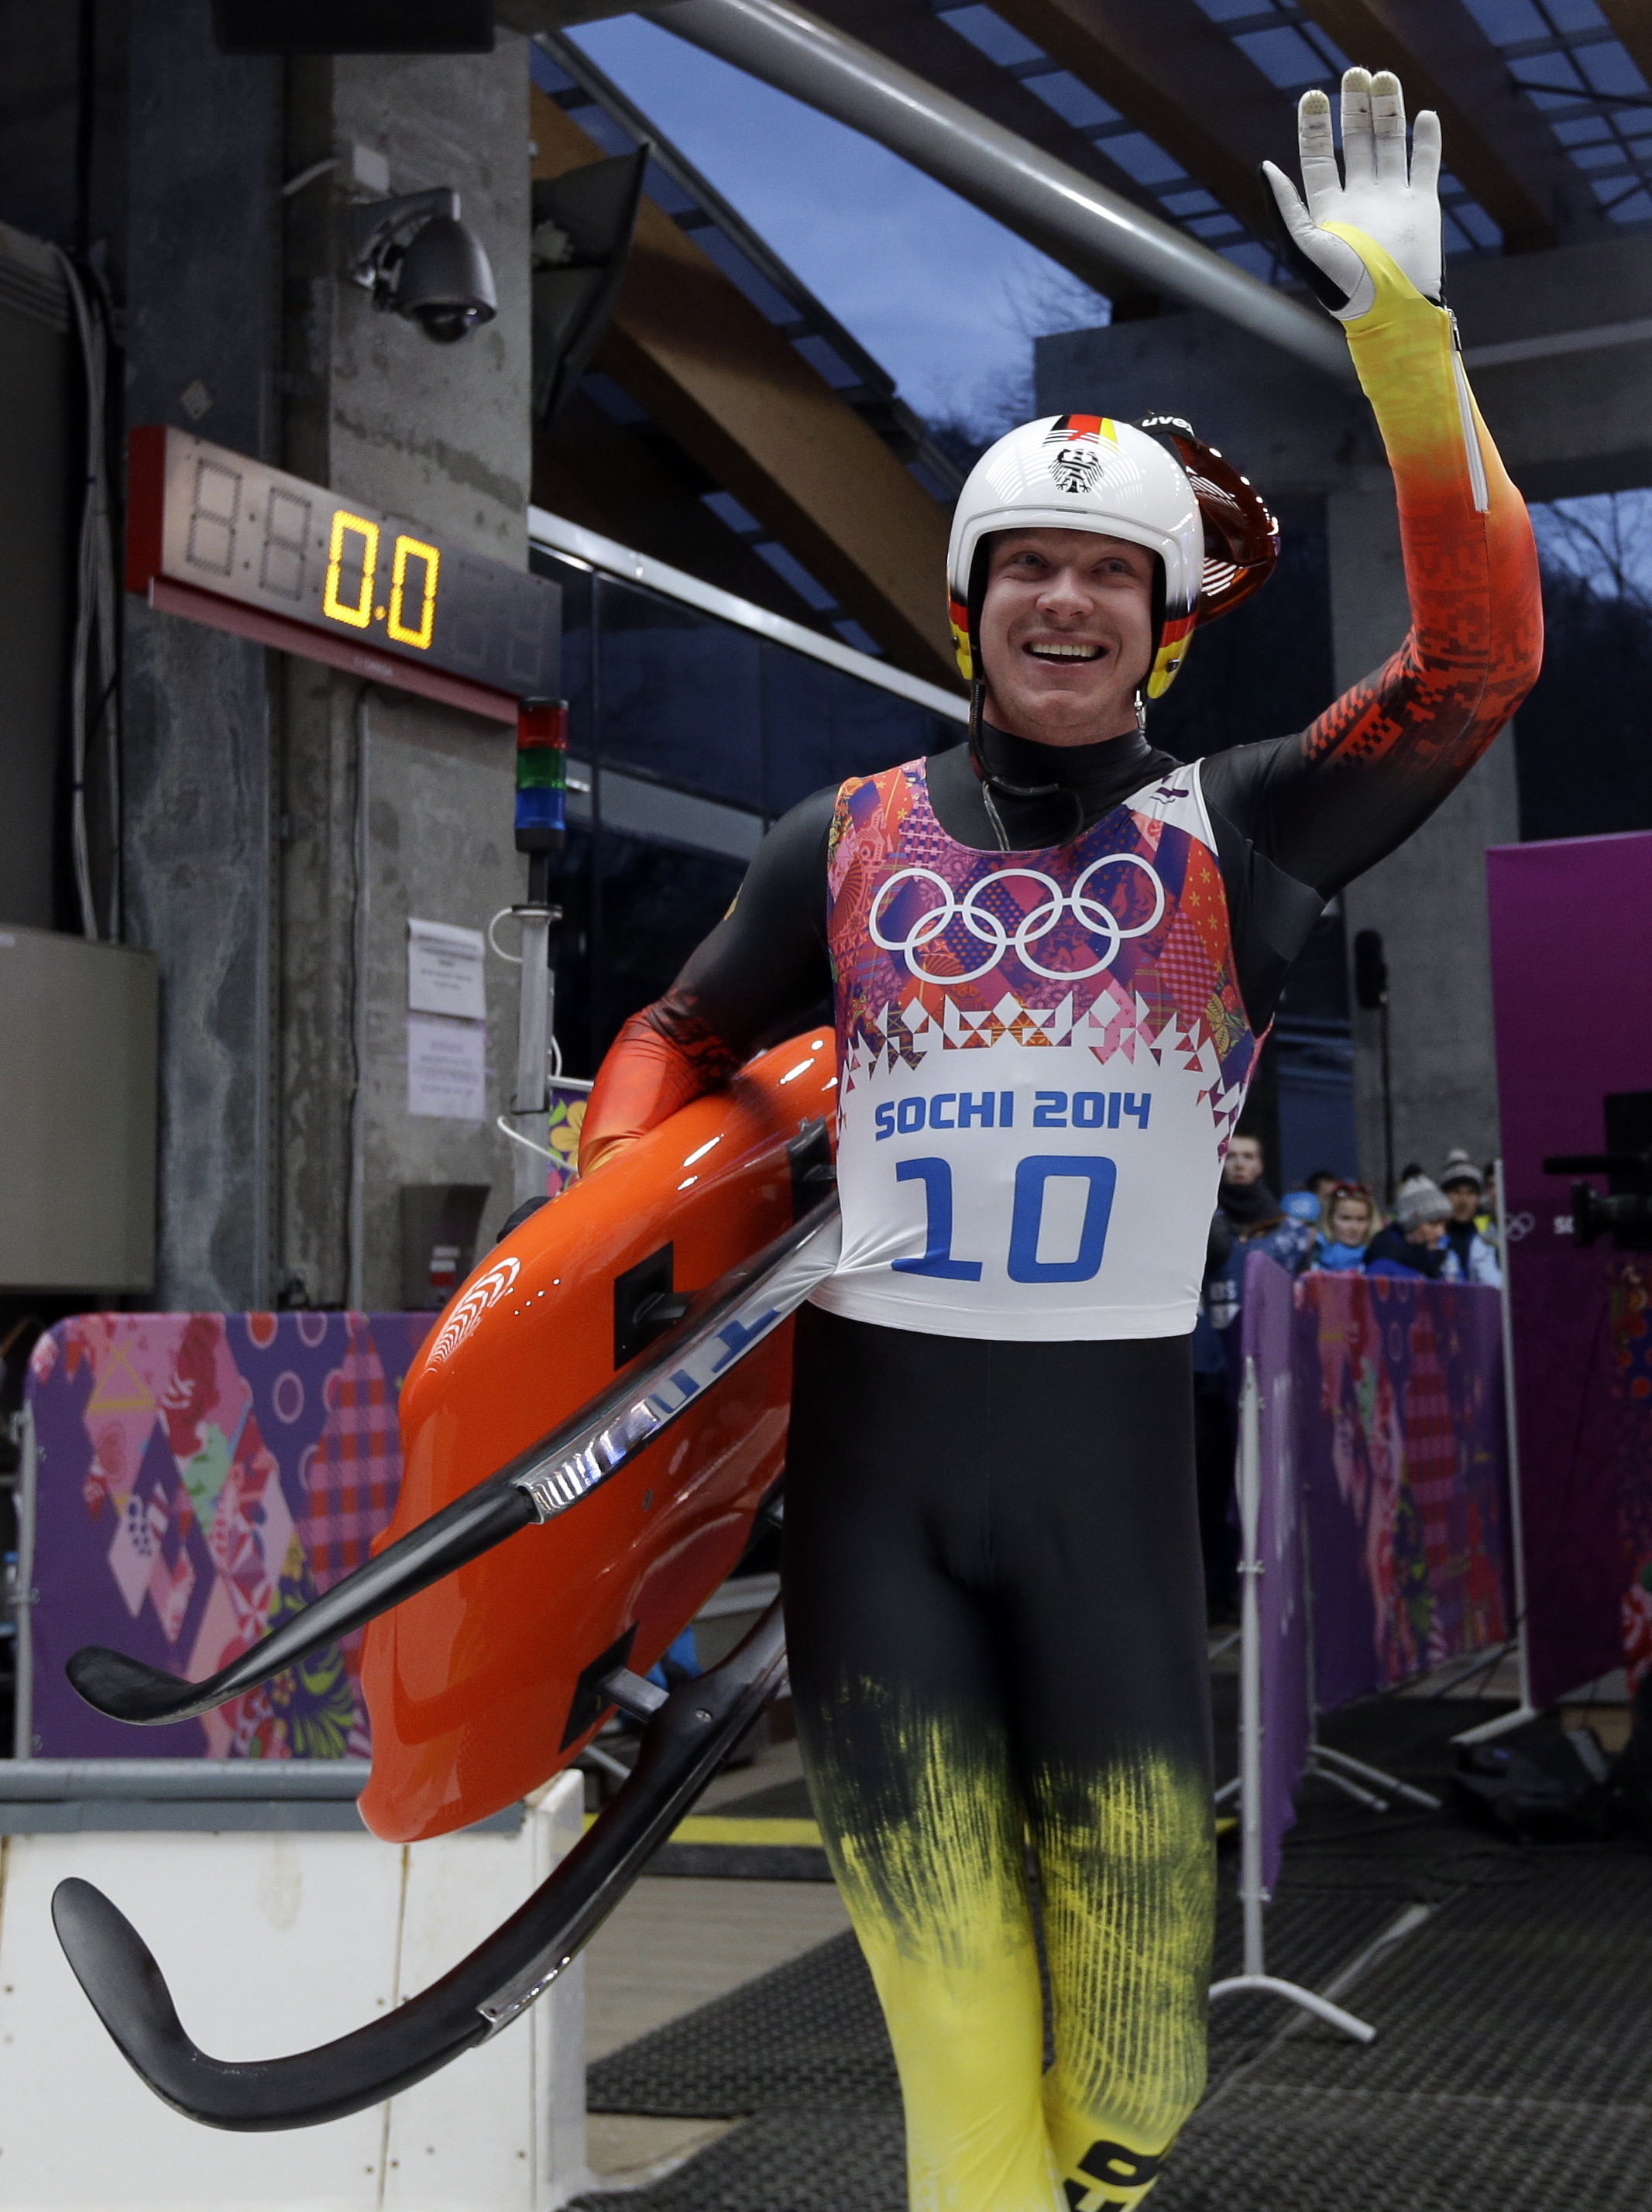 Felix Loch of Germany waves in the finish area during the men's singles luge final at the 2014 Winter Olympics, Sunday, Feb. 9, 2014, in Krasnaya Polyana, Russia.(AP Photo/Natacha Pisarenko)